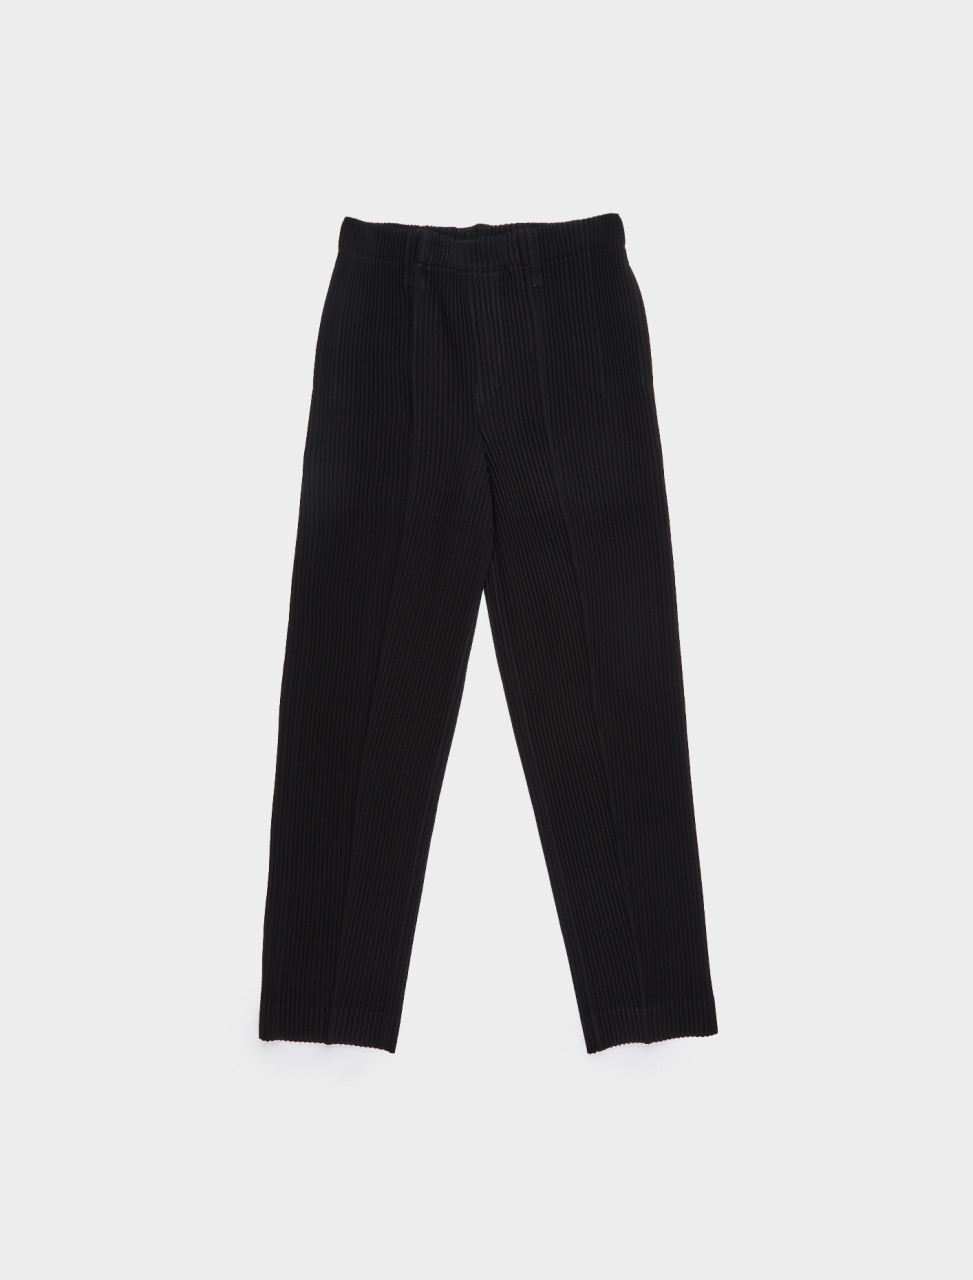 HP08FF121-15 HOMME PLISSE ISSEY MIYAKE PLEATED TUXEDO TROUSER BLACK